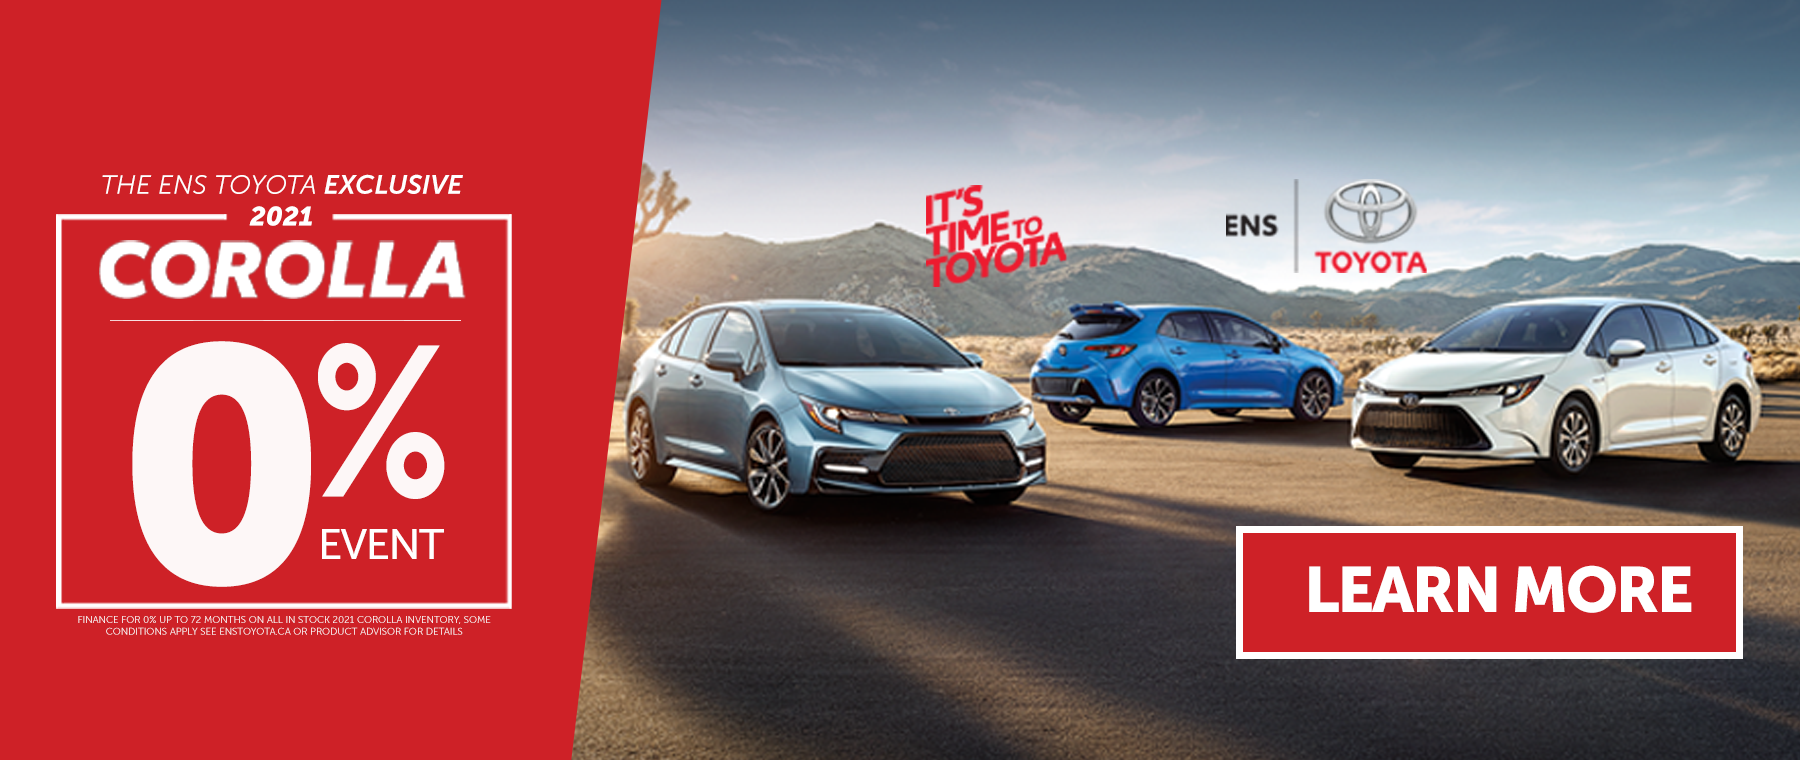 Time to Toyota 0 percent event website banner July 2021